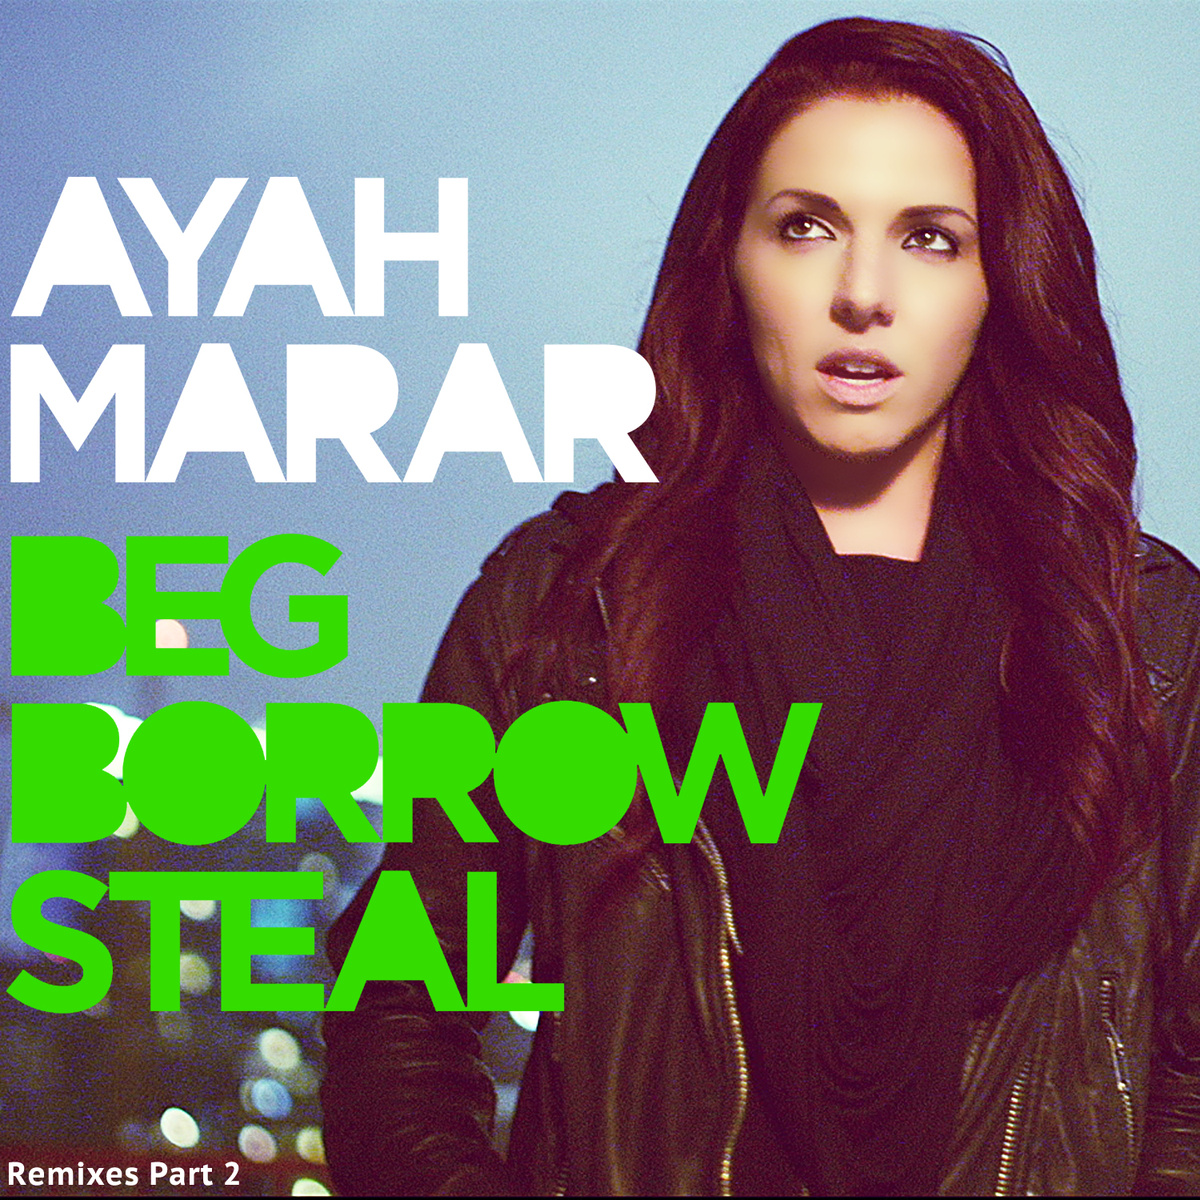 Ayah Marar – Beg Borrow Steal (Looney B Remix)